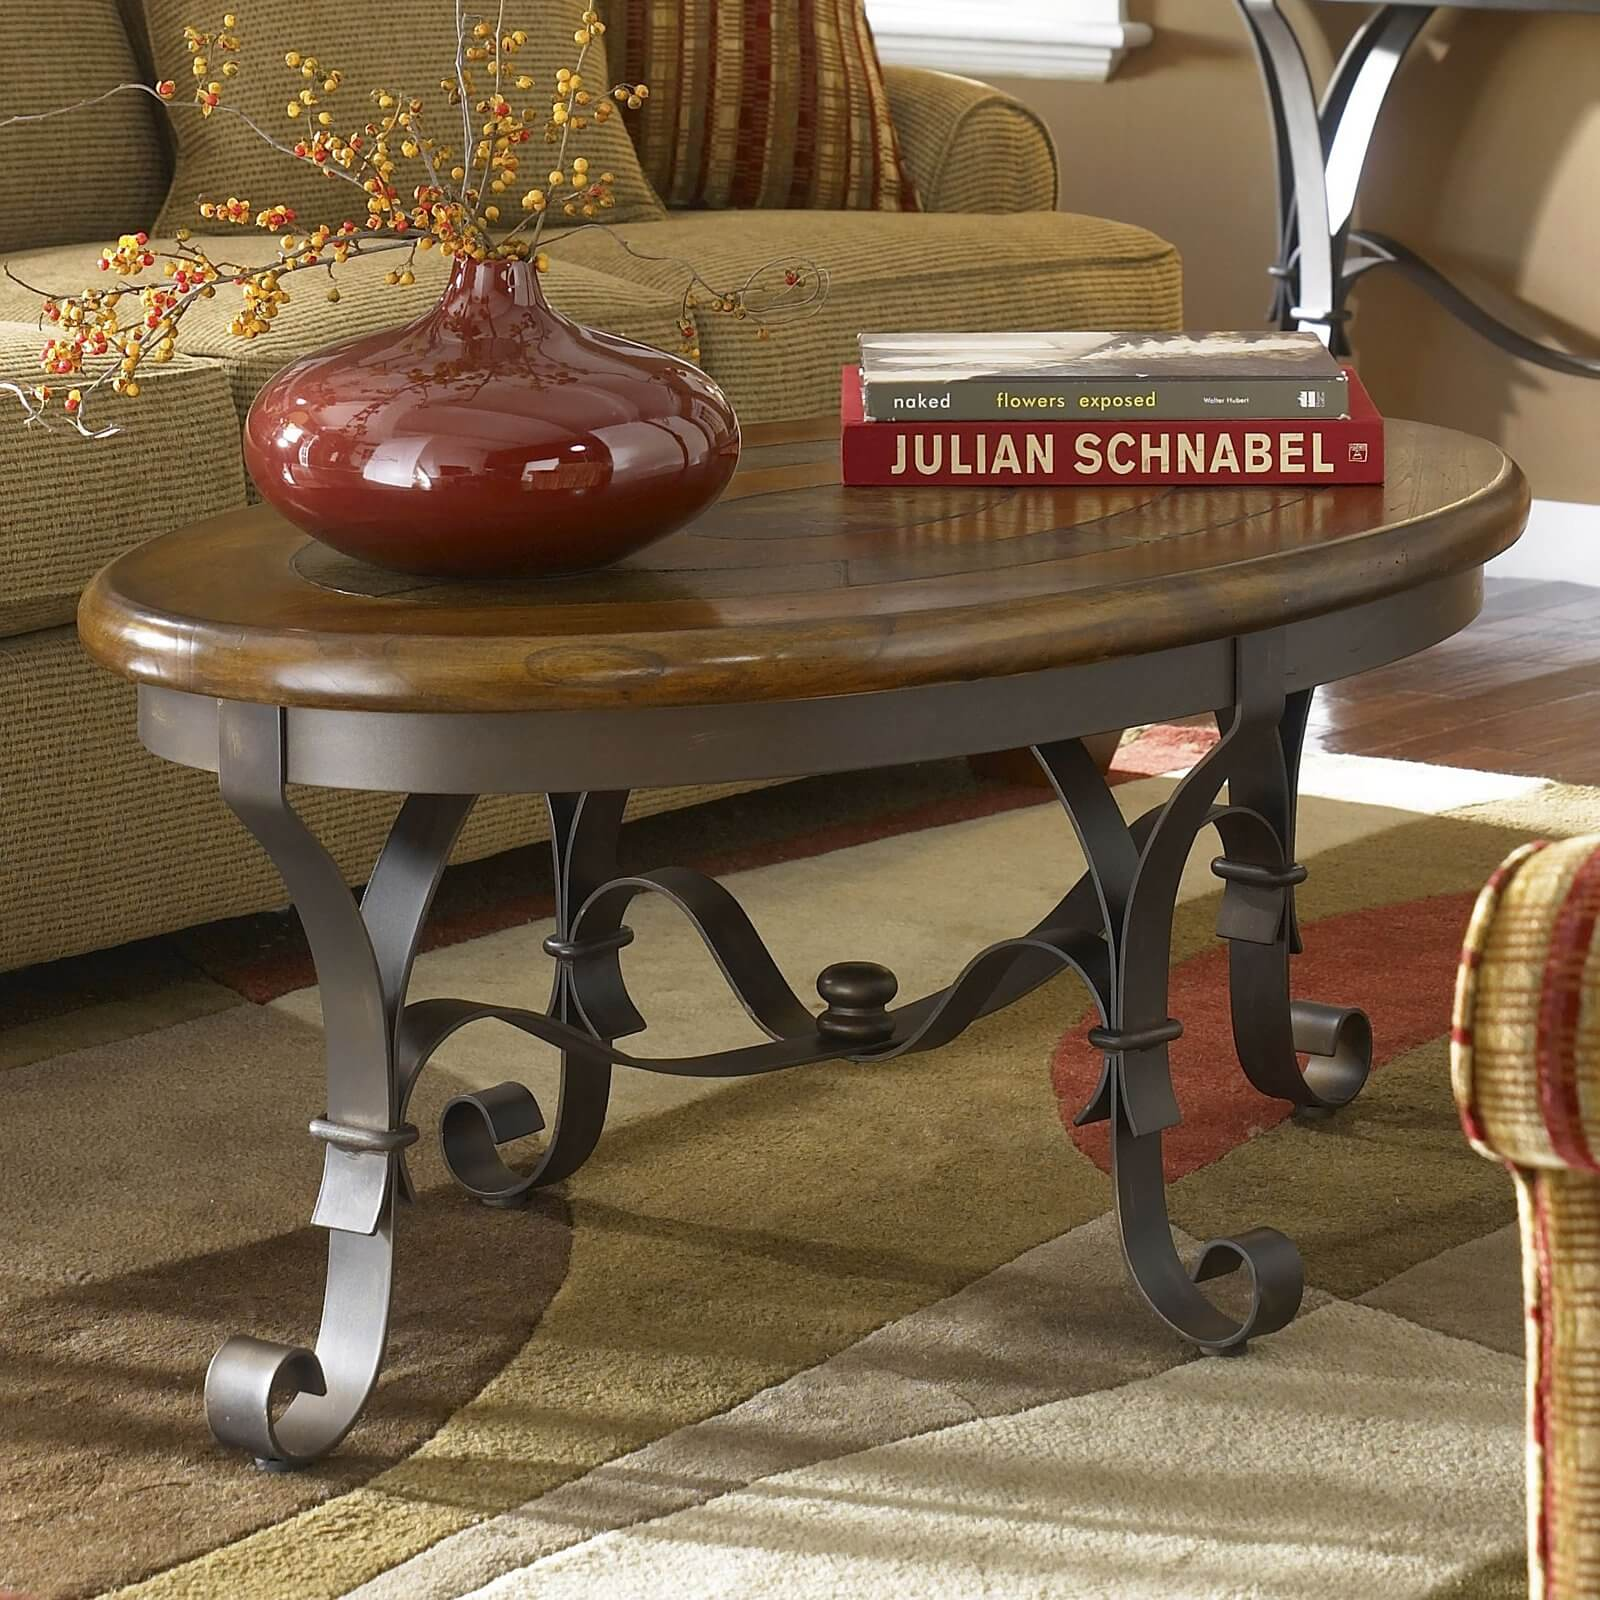 Here's another rich wood top coffee table with a metal frame. The thin construction keeps the appearance light and airy, despite the thick, patterned wood surface.